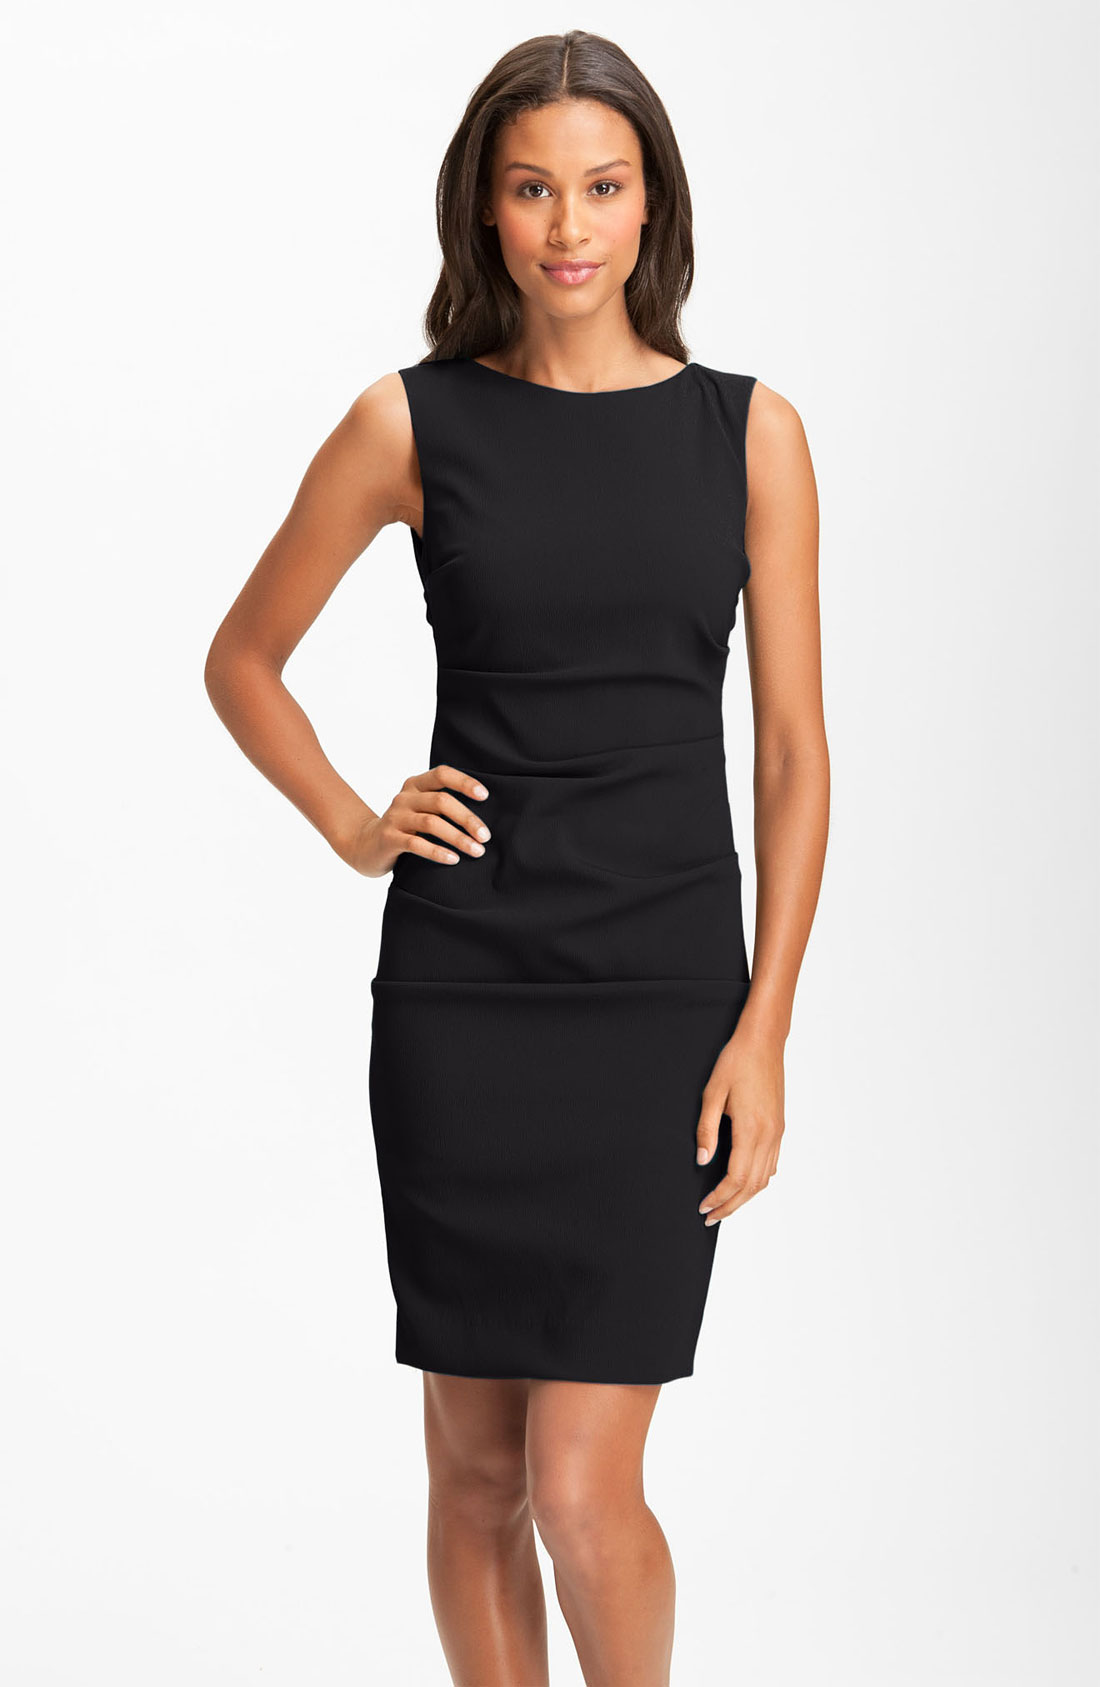 Nicole Miller Womens Clothing